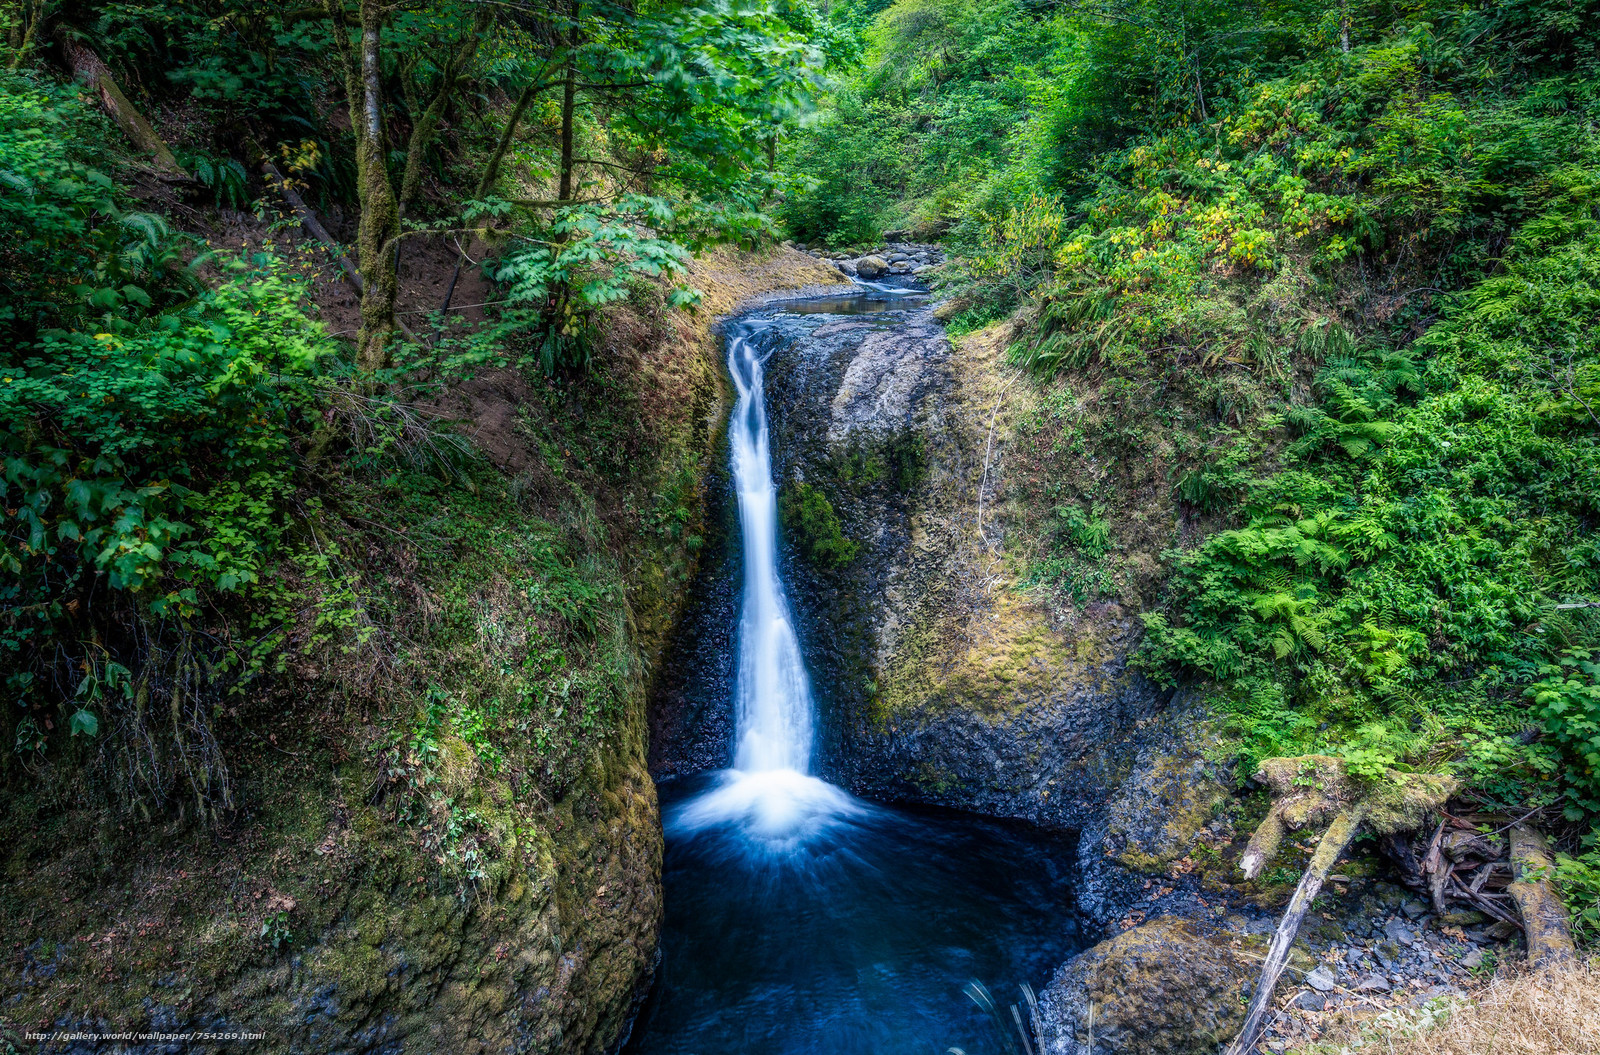 Columbia River Gorge, Upper Oneonta Waterfalls, waterfall, rock, trees, landscape